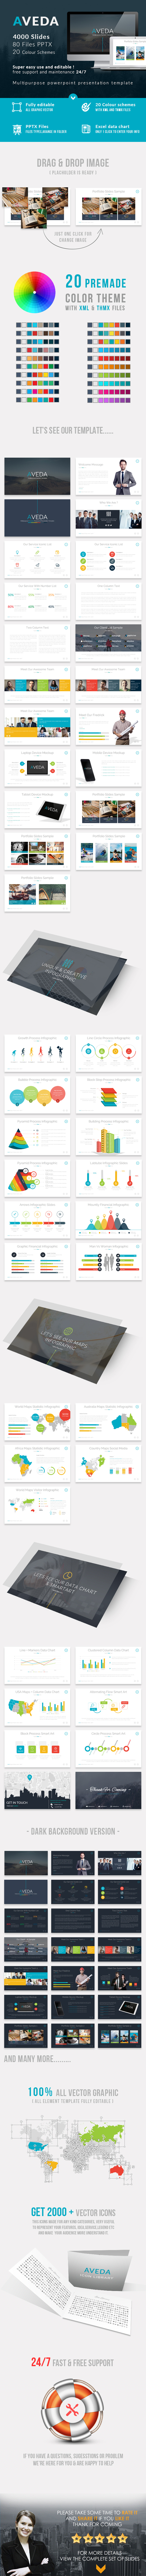 Aveda Powerpoint Presentation Template - Business PowerPoint Templates